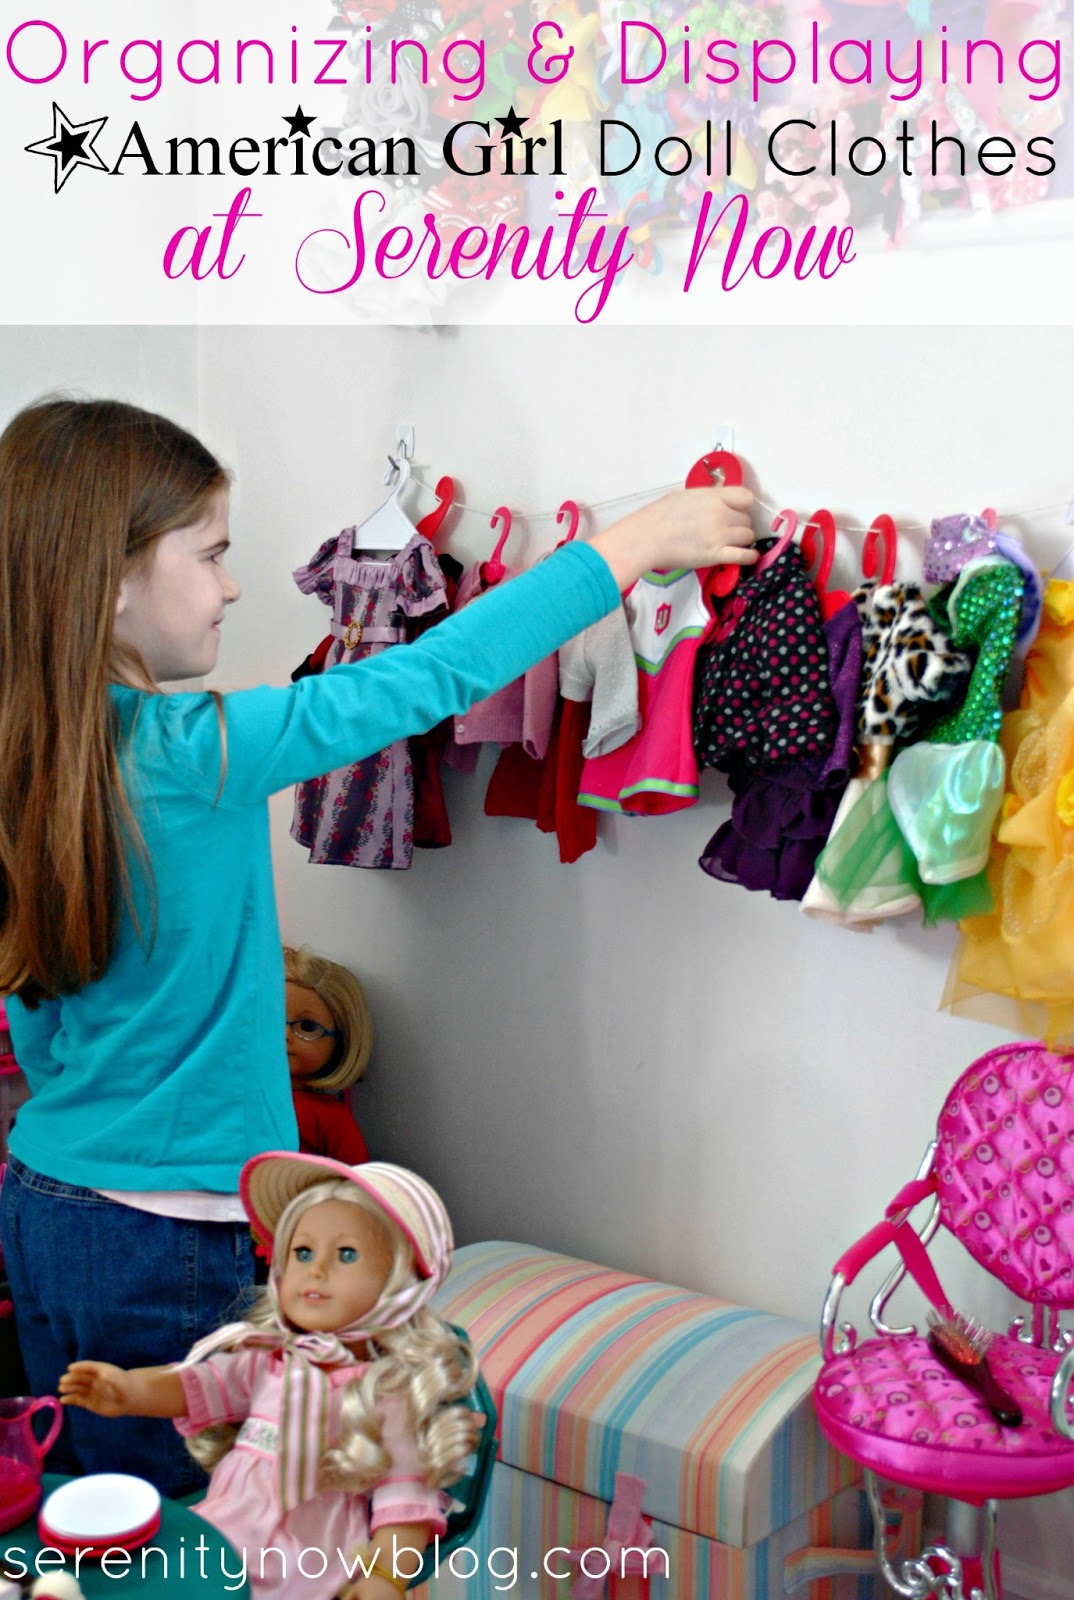 American Girl Doll Clothesline Display, From Serenity Now